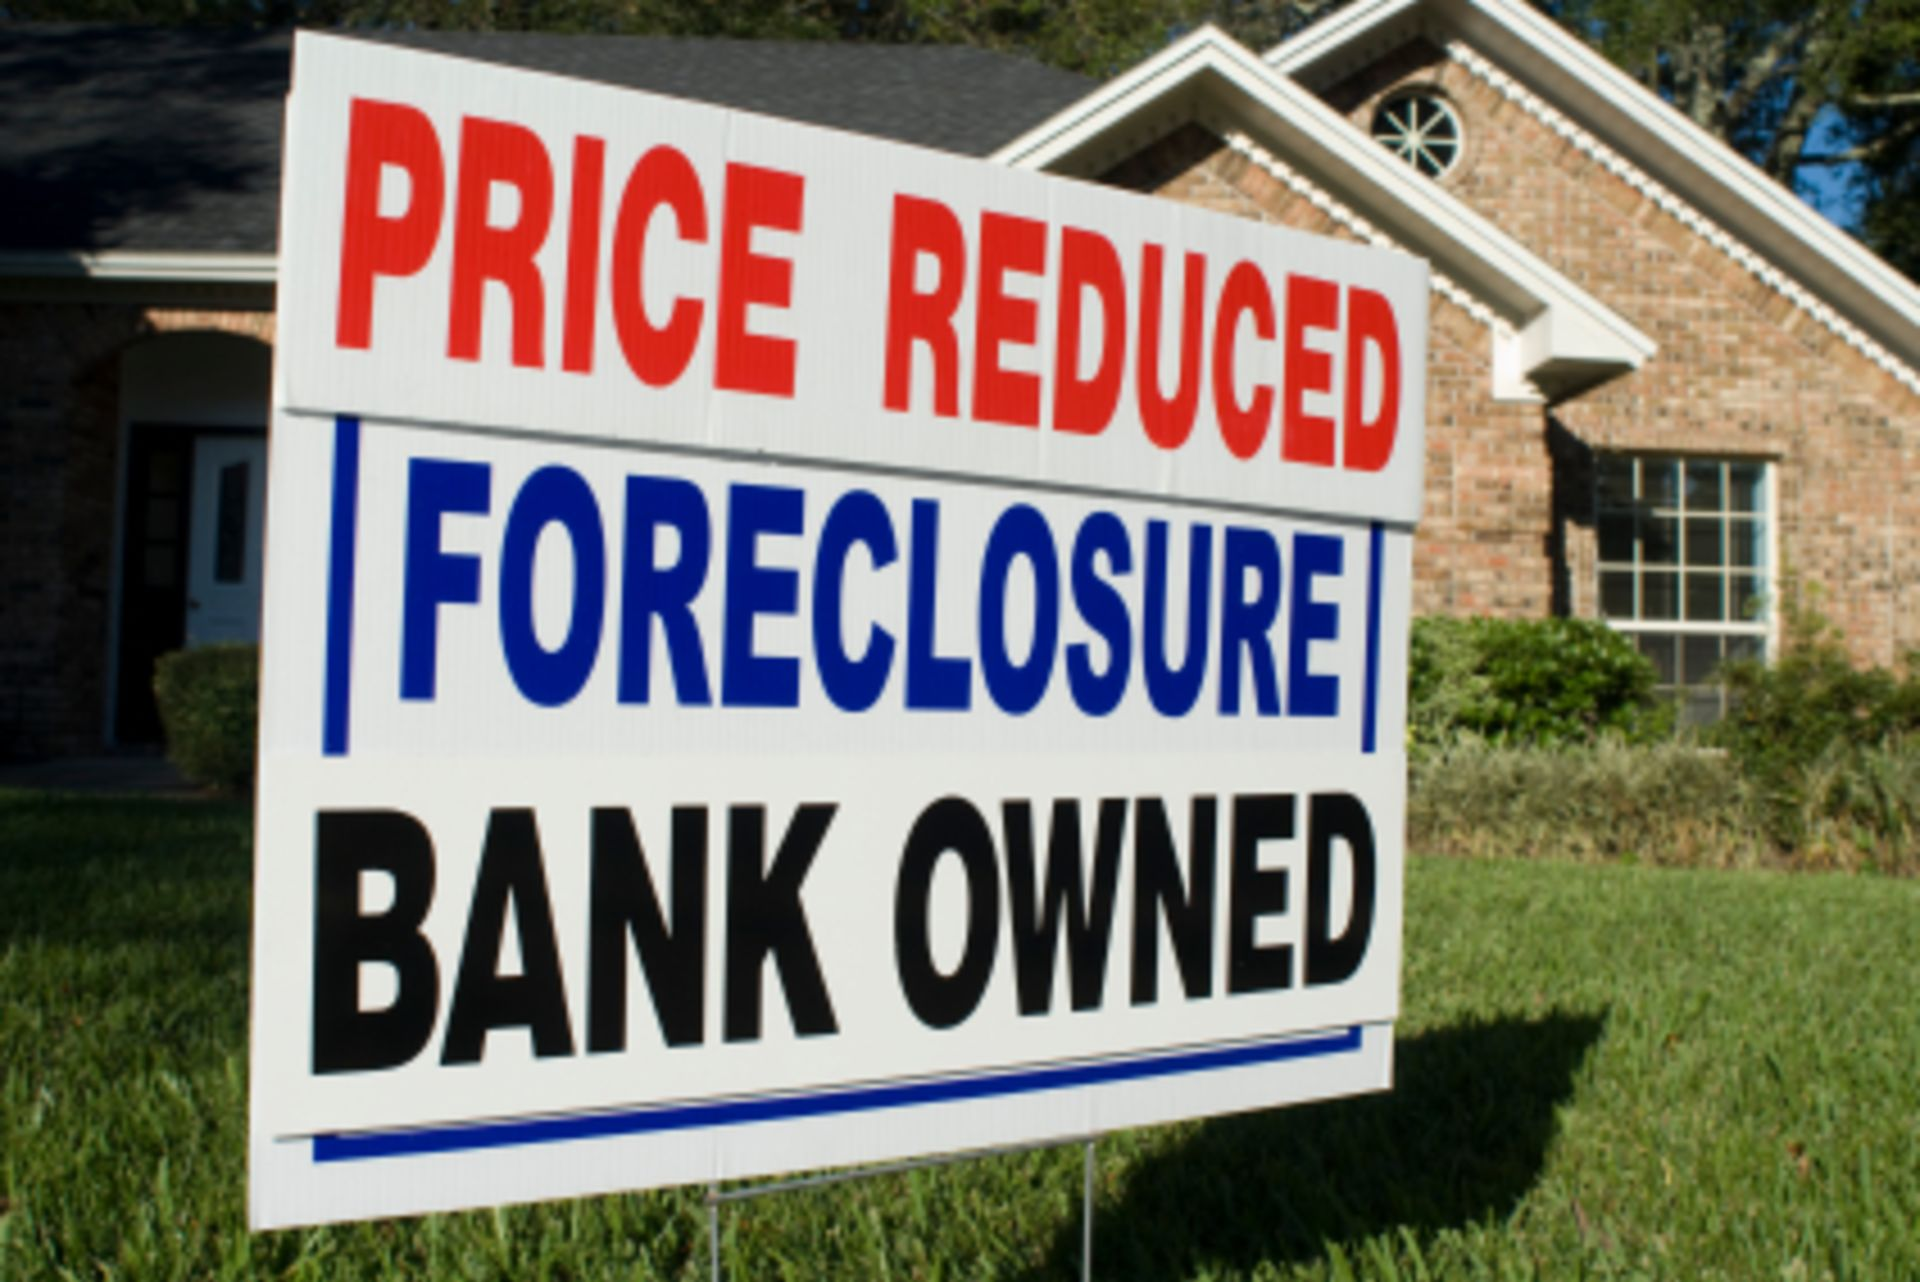 Foreclosures hit a 12-year low